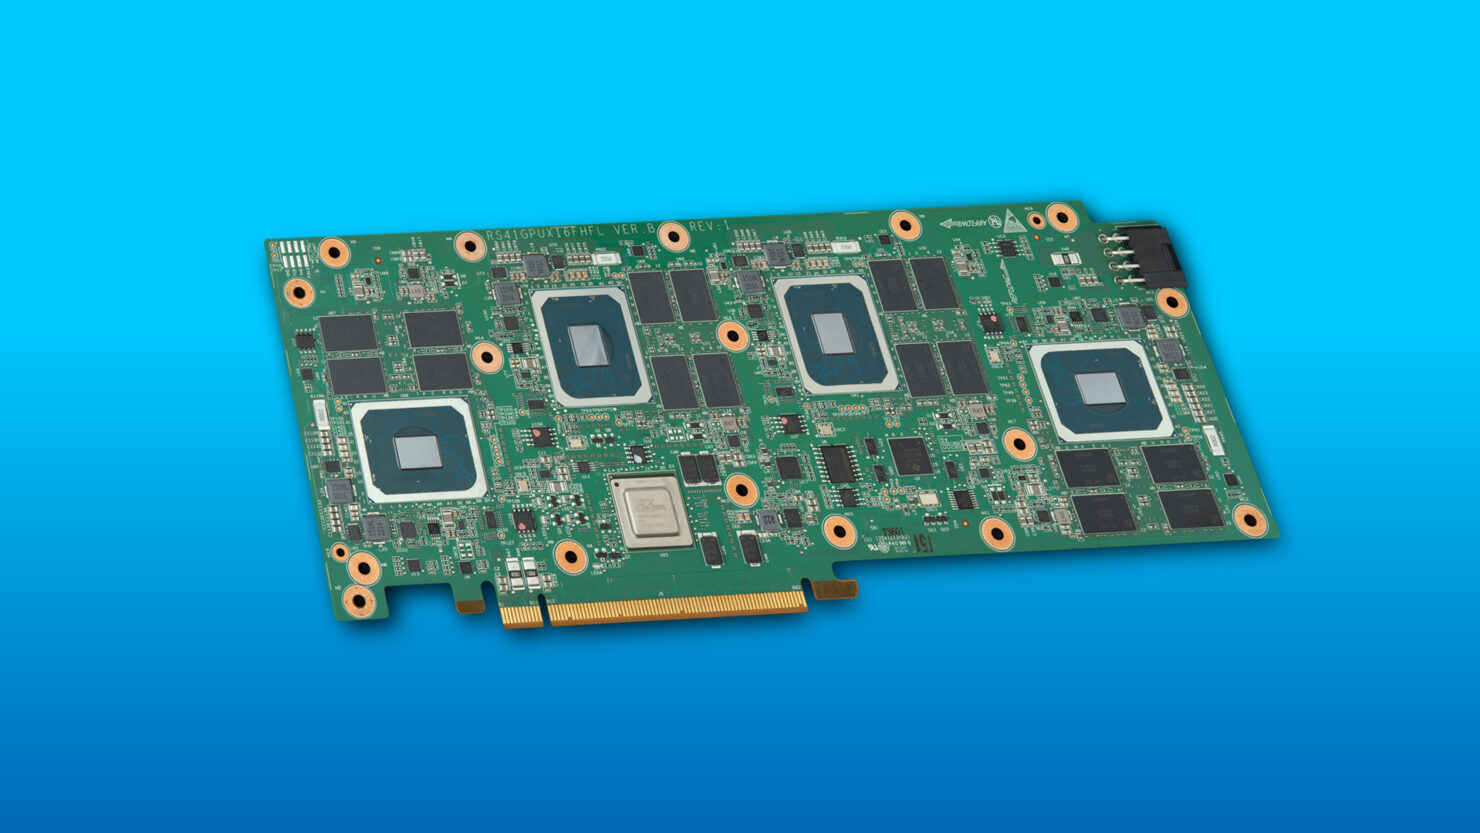 h3c-xg310-pcie-card-front-board